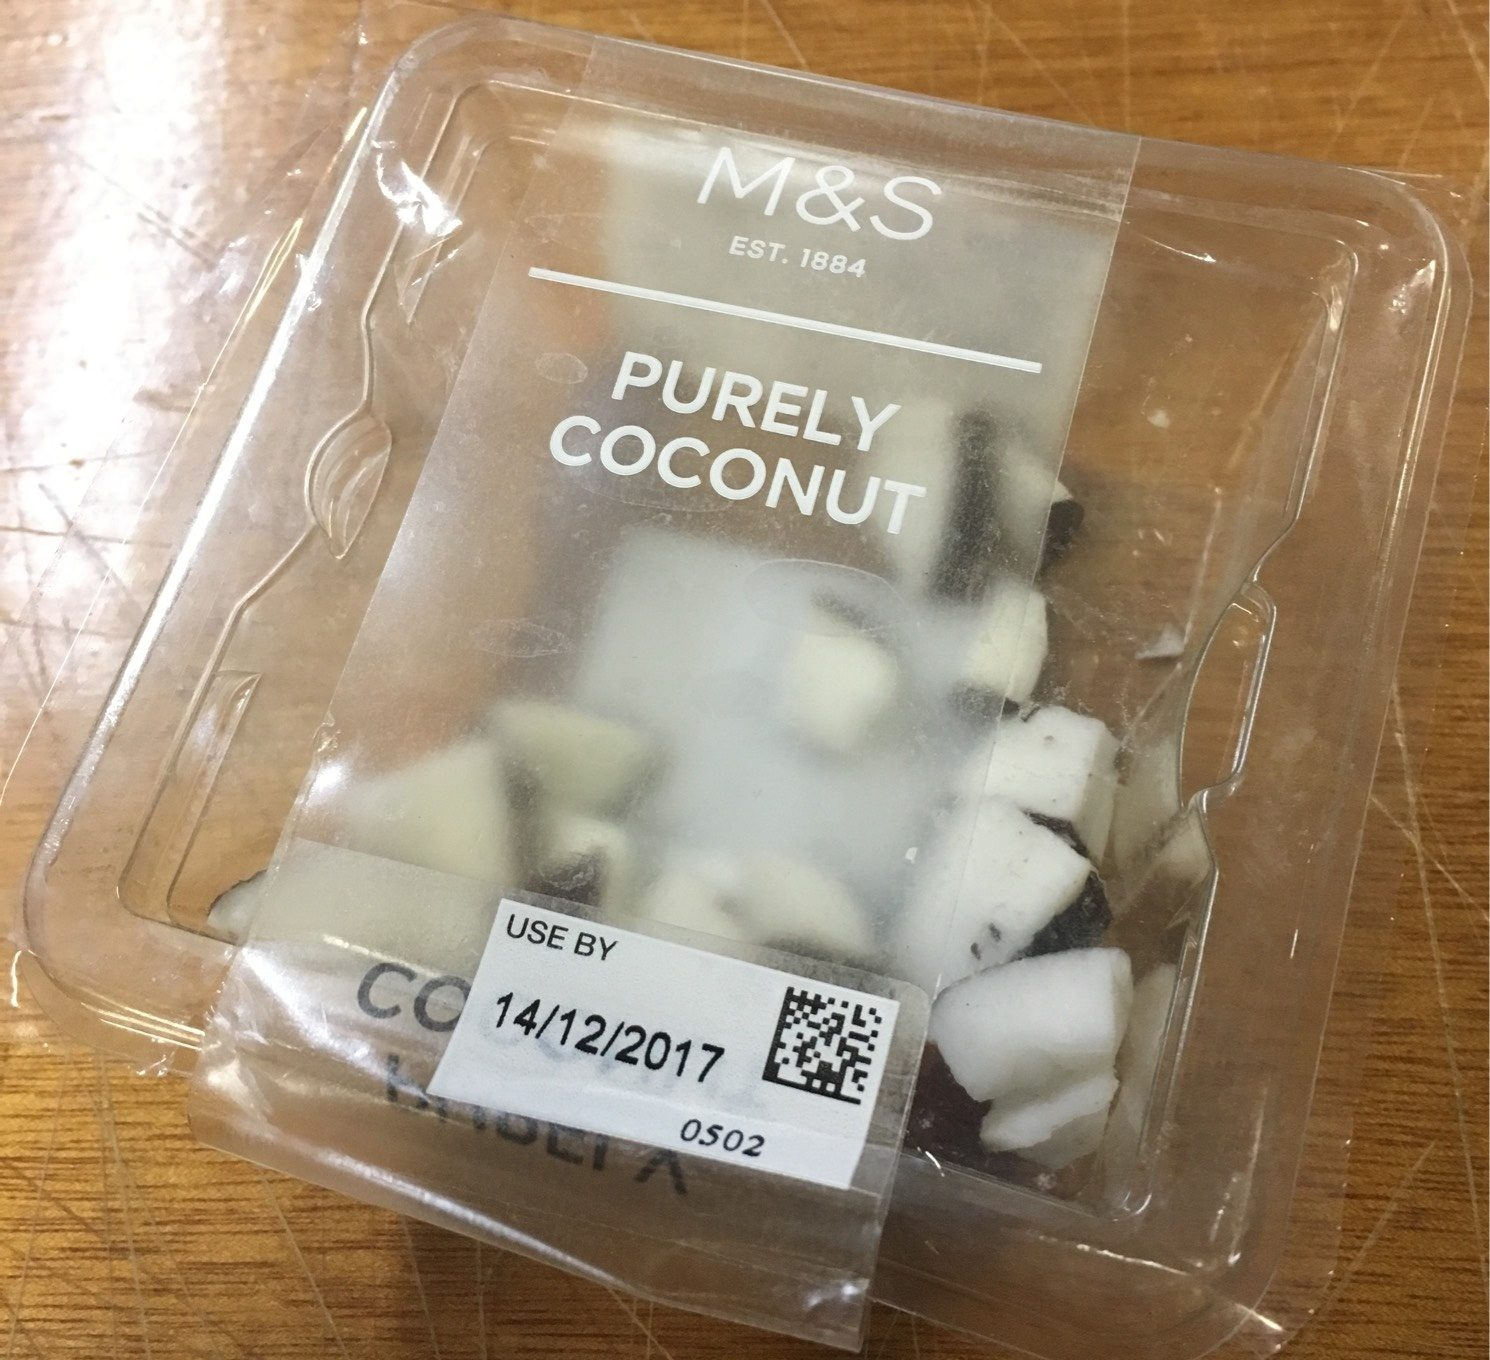 Purely coconut - Product